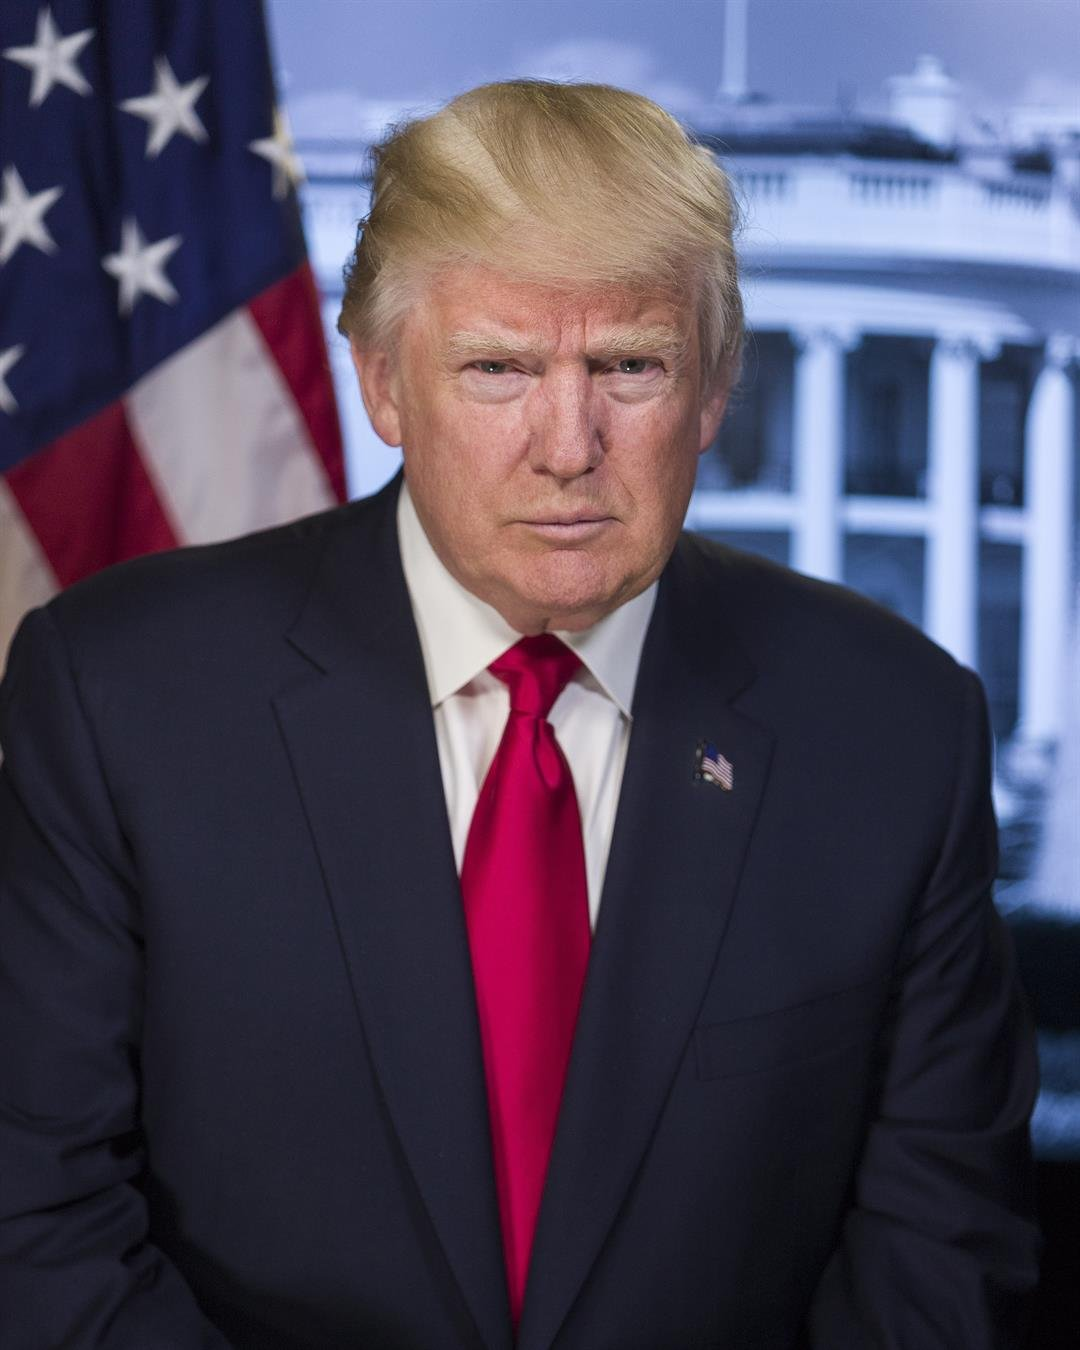 President Donald J. Trump is the 45th President of the United States.